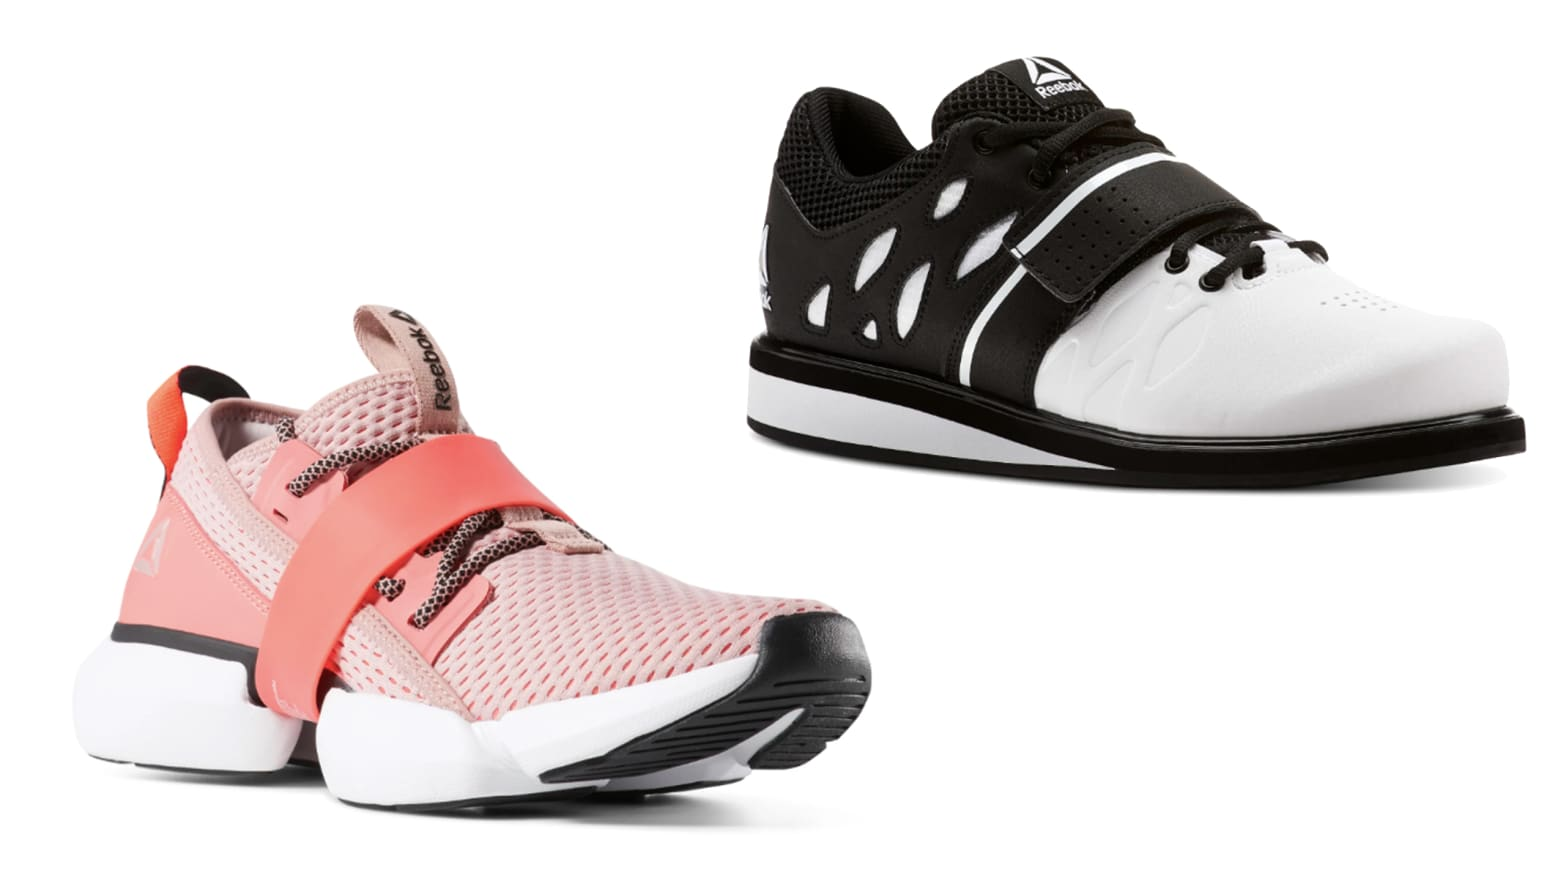 Reebok's Friends & Family Sale Means an Extra 50% Off All Sale Styles